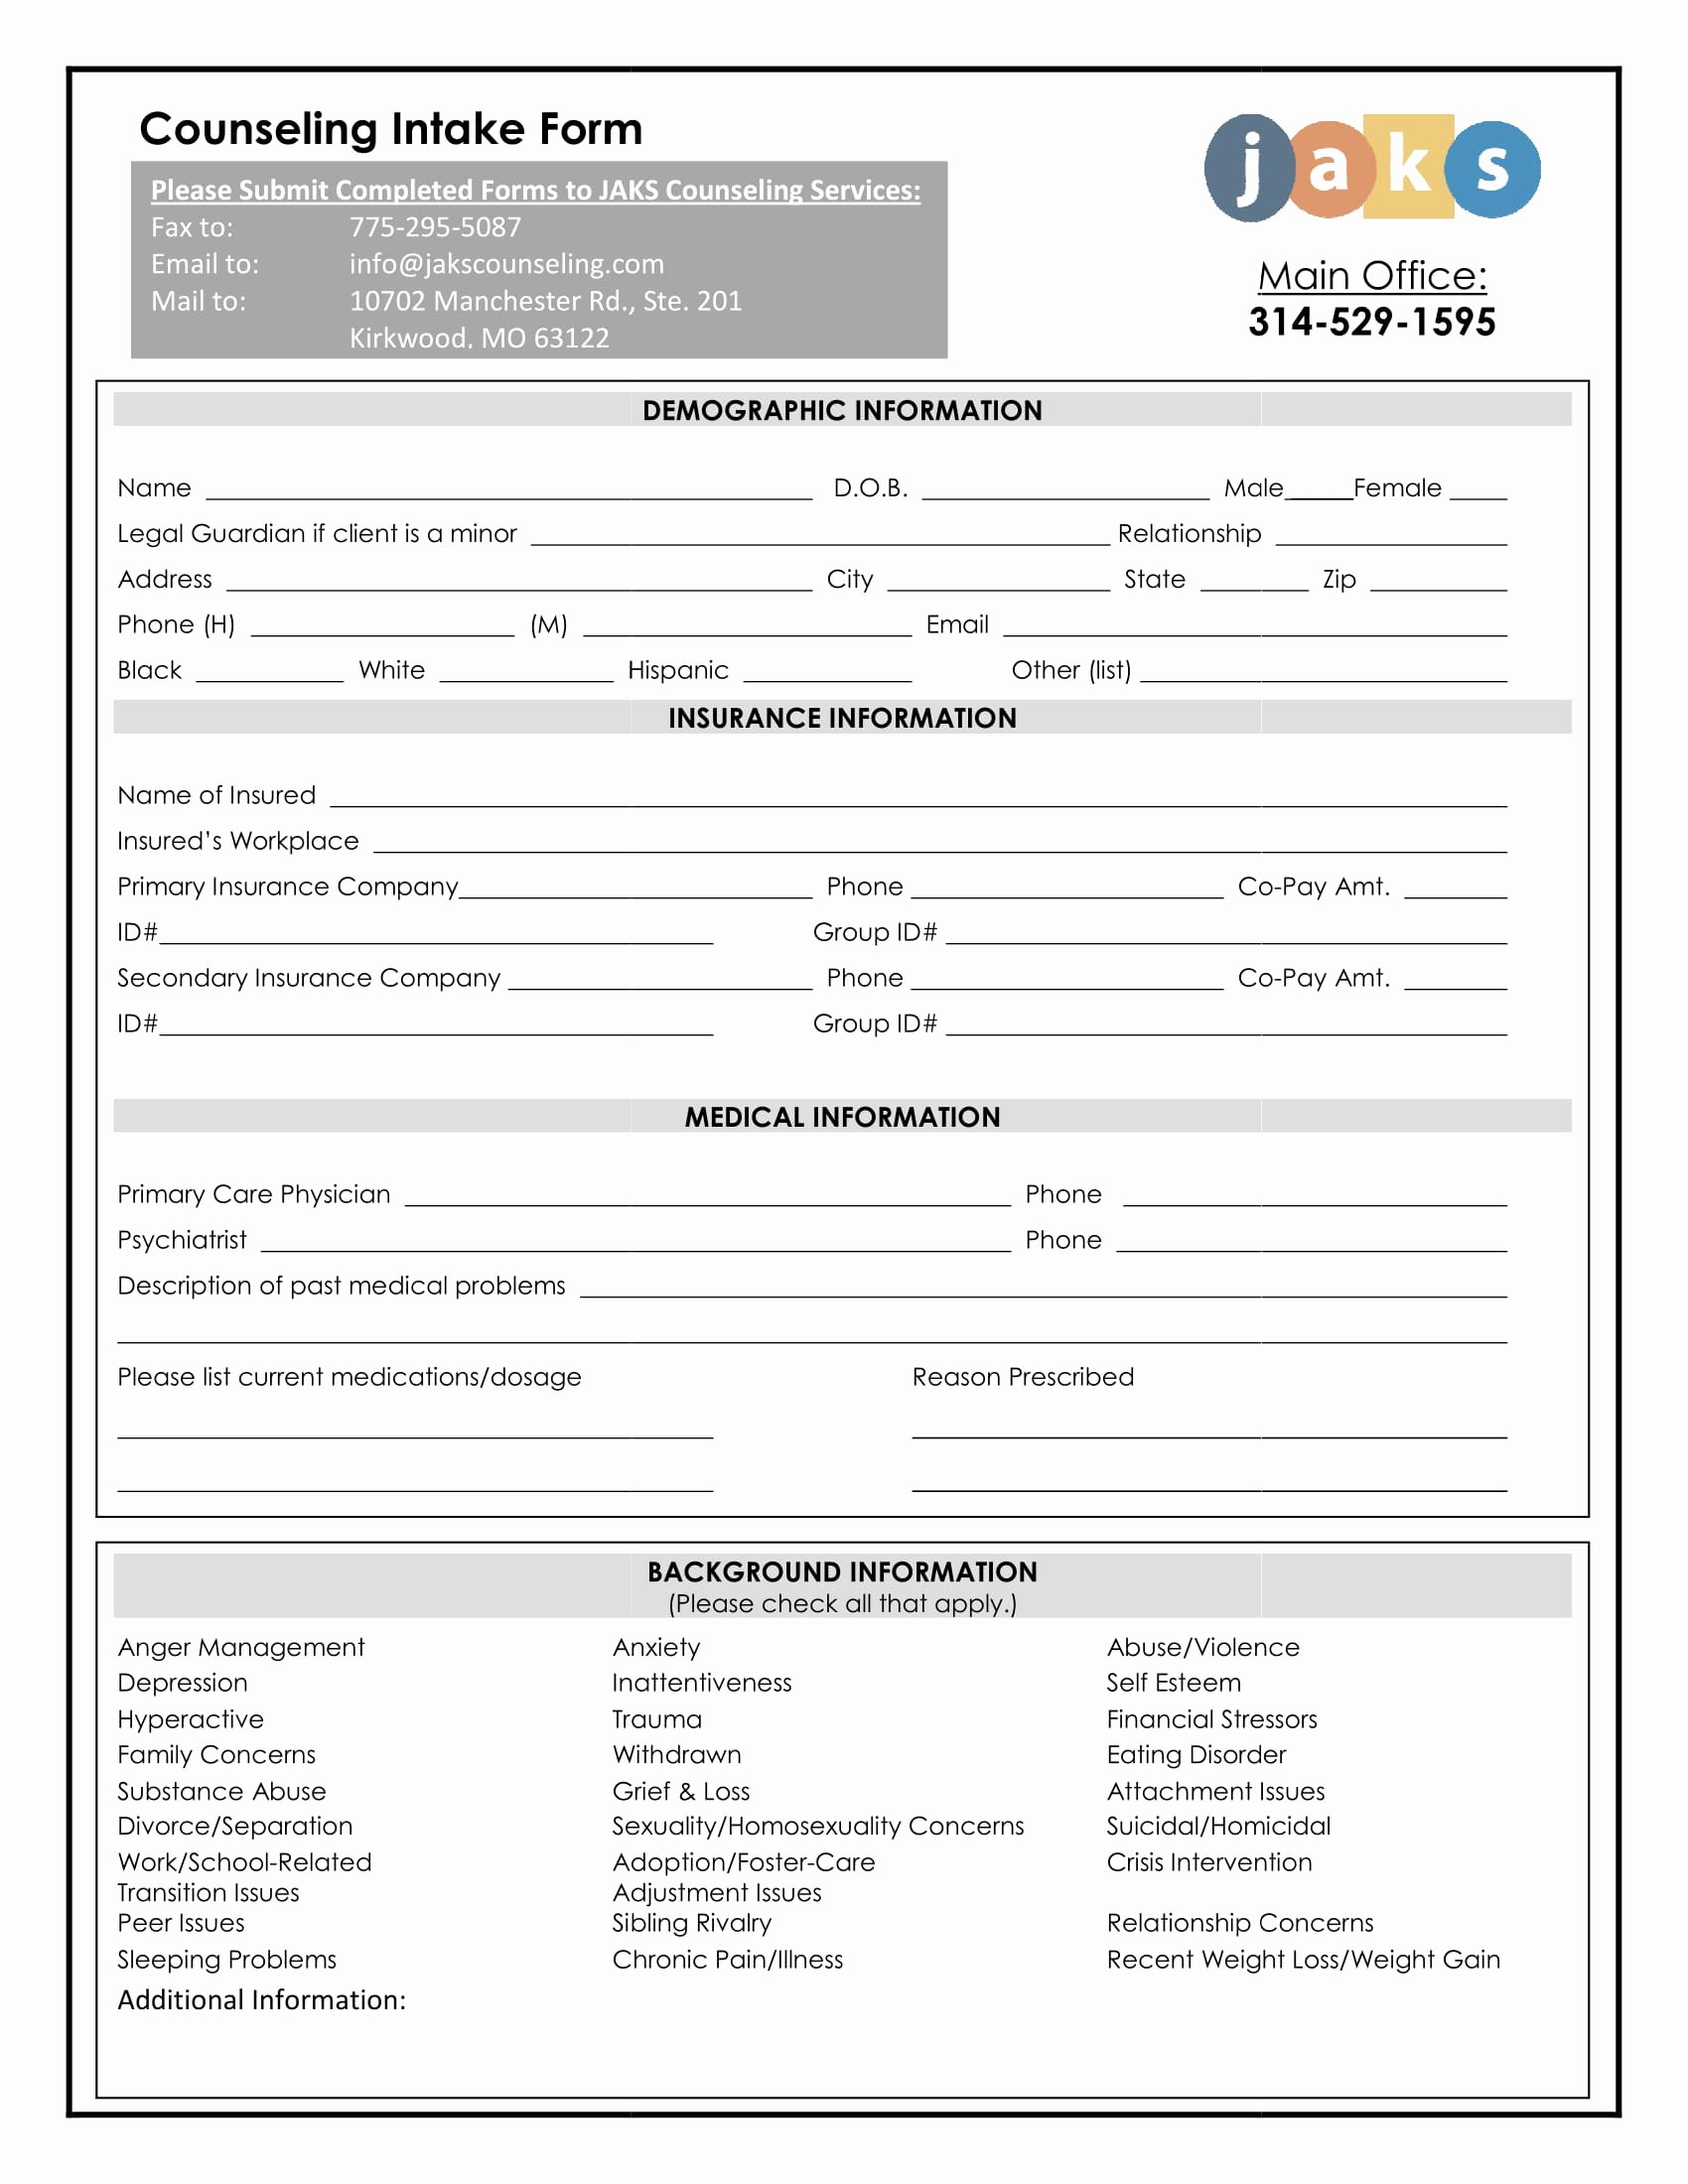 Counseling Intake form Template New Benefits Of Using Intake forms for Medication Treatments